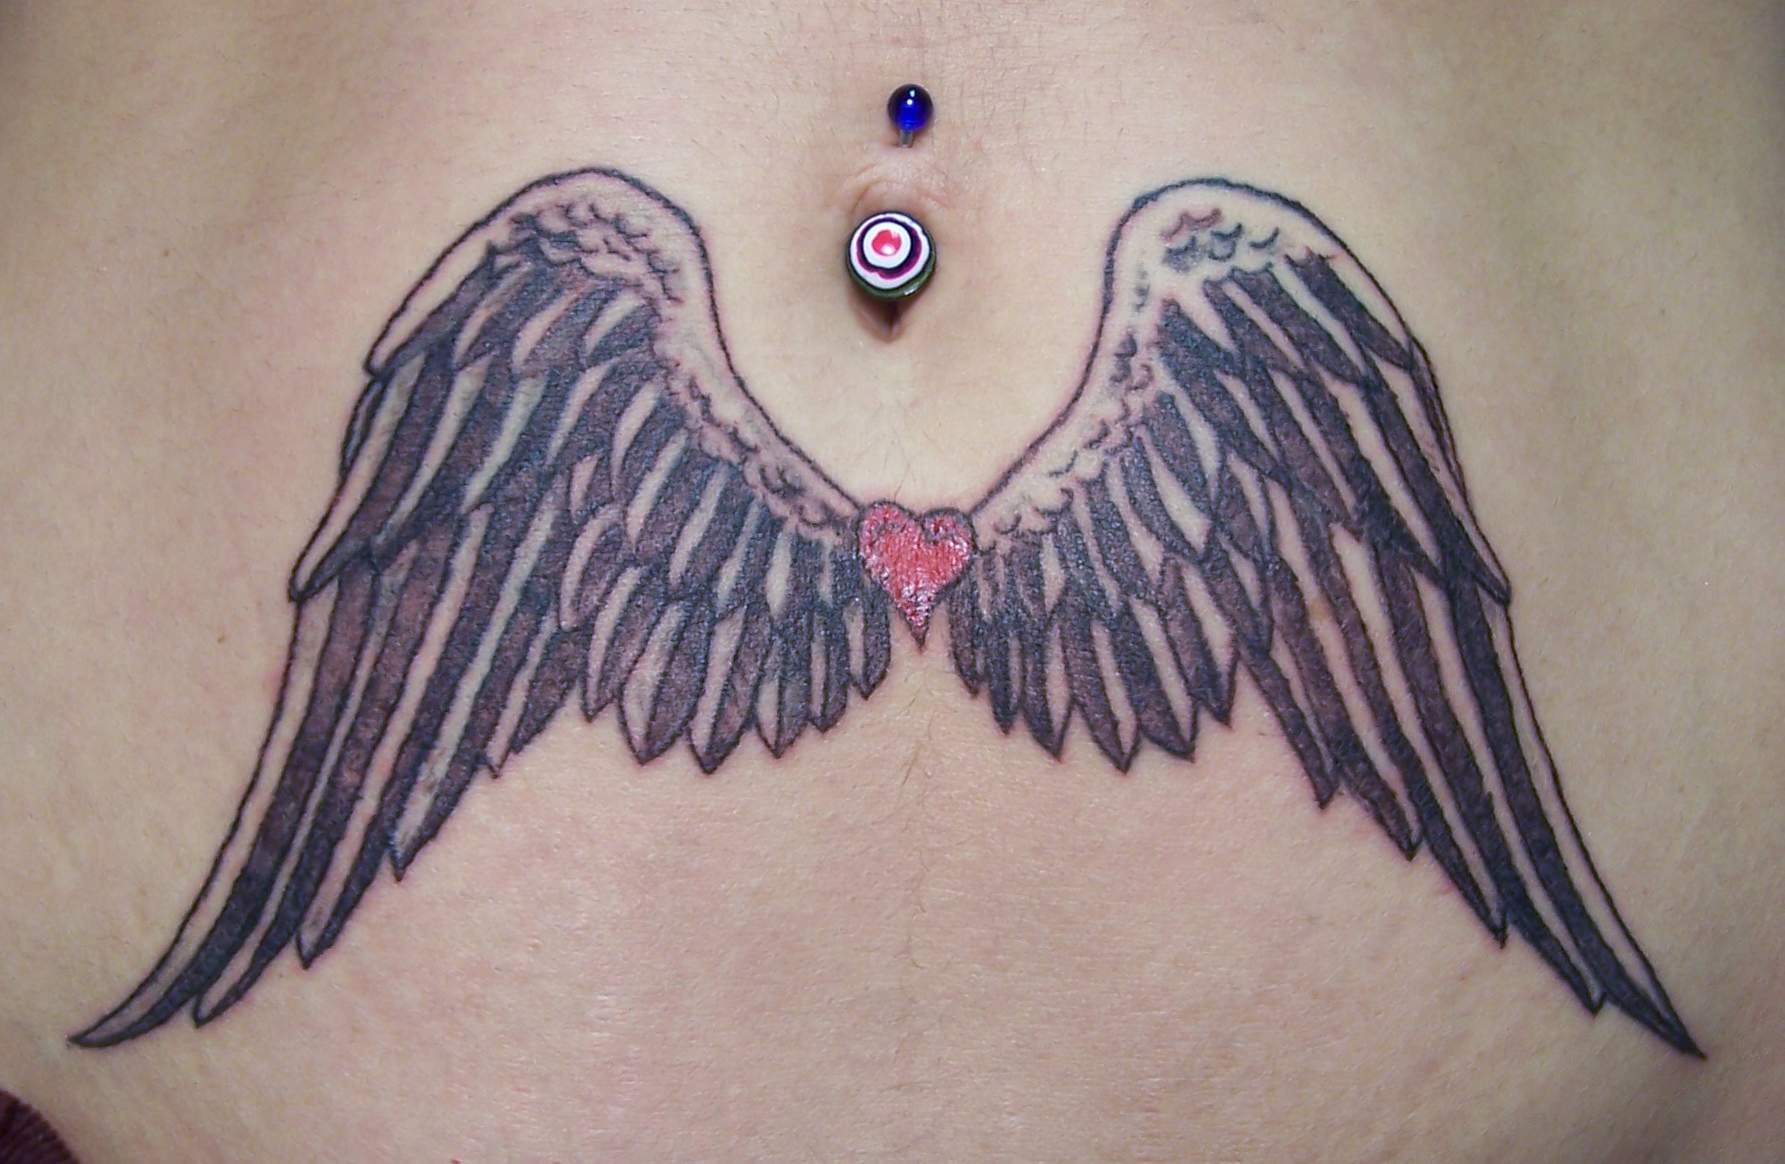 Cute Angel Wings Tattoos On Girl Stomach